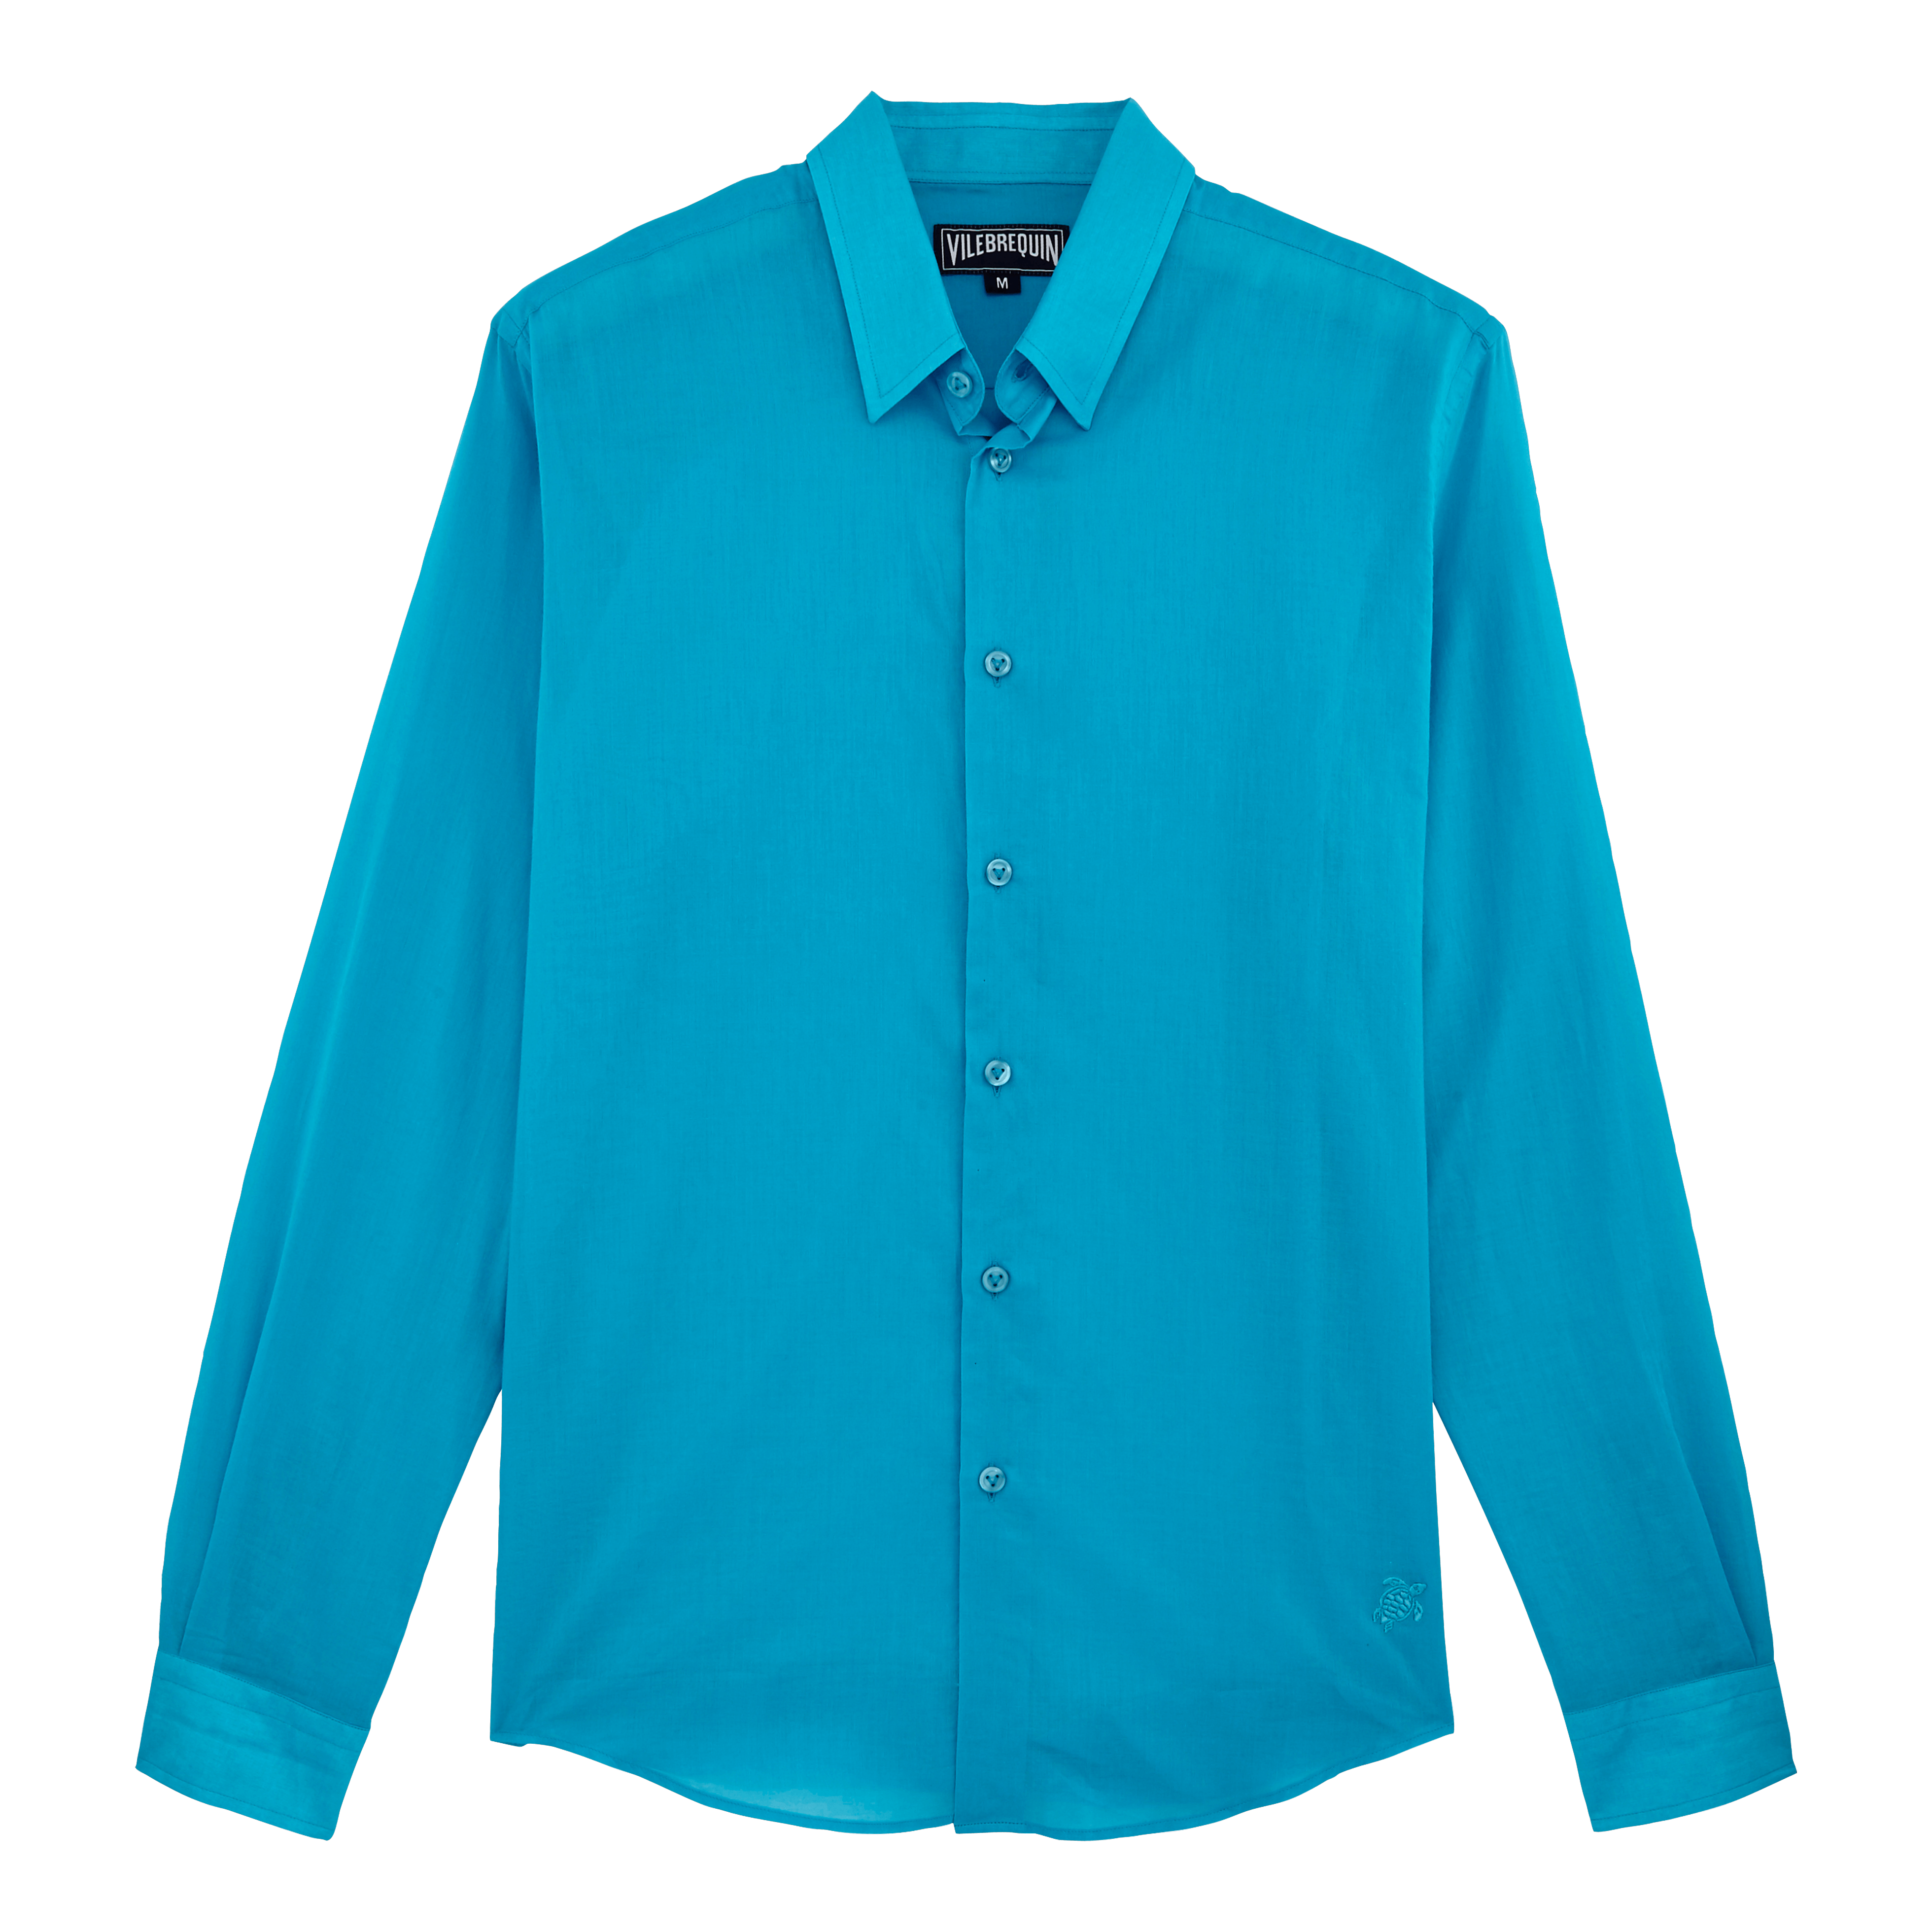 Vilebrequin Pap Unisexe Adulte - Unisex Cotton Shirt Solid - Shirts - Caracal In Blue